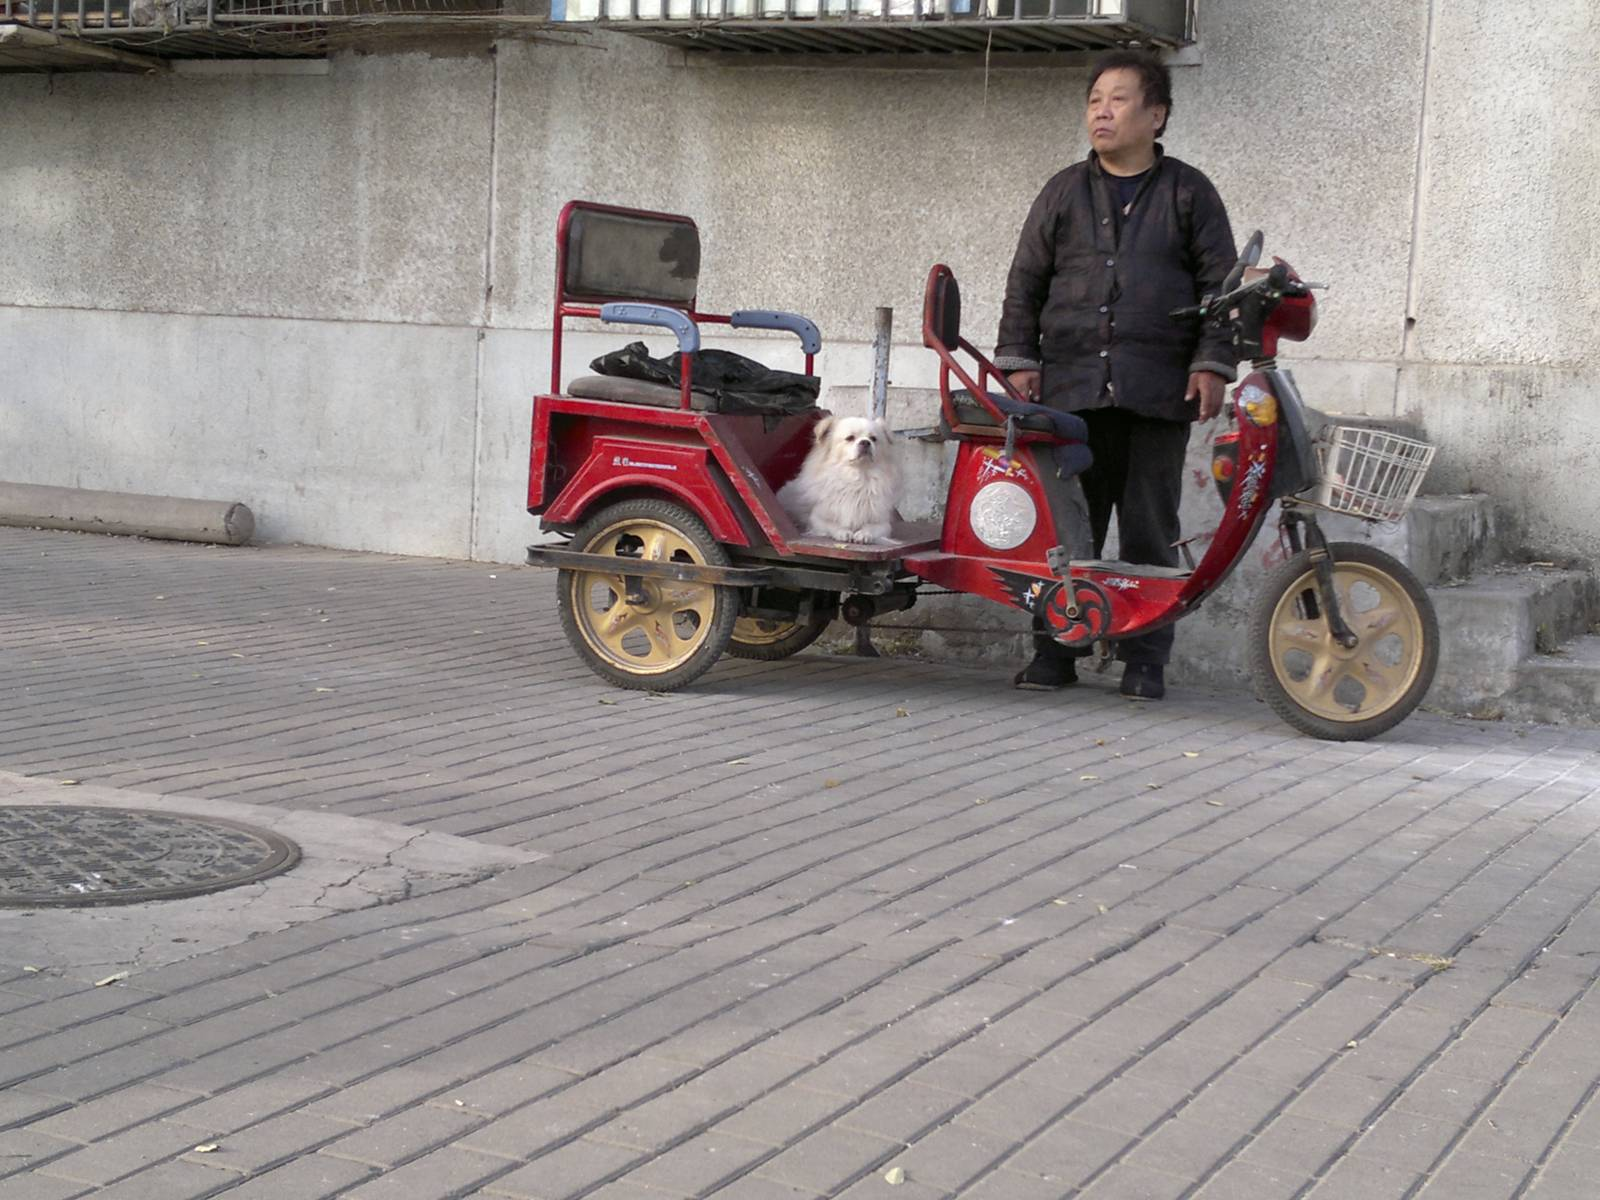 Cina-China-man-chinese-moto-taxi